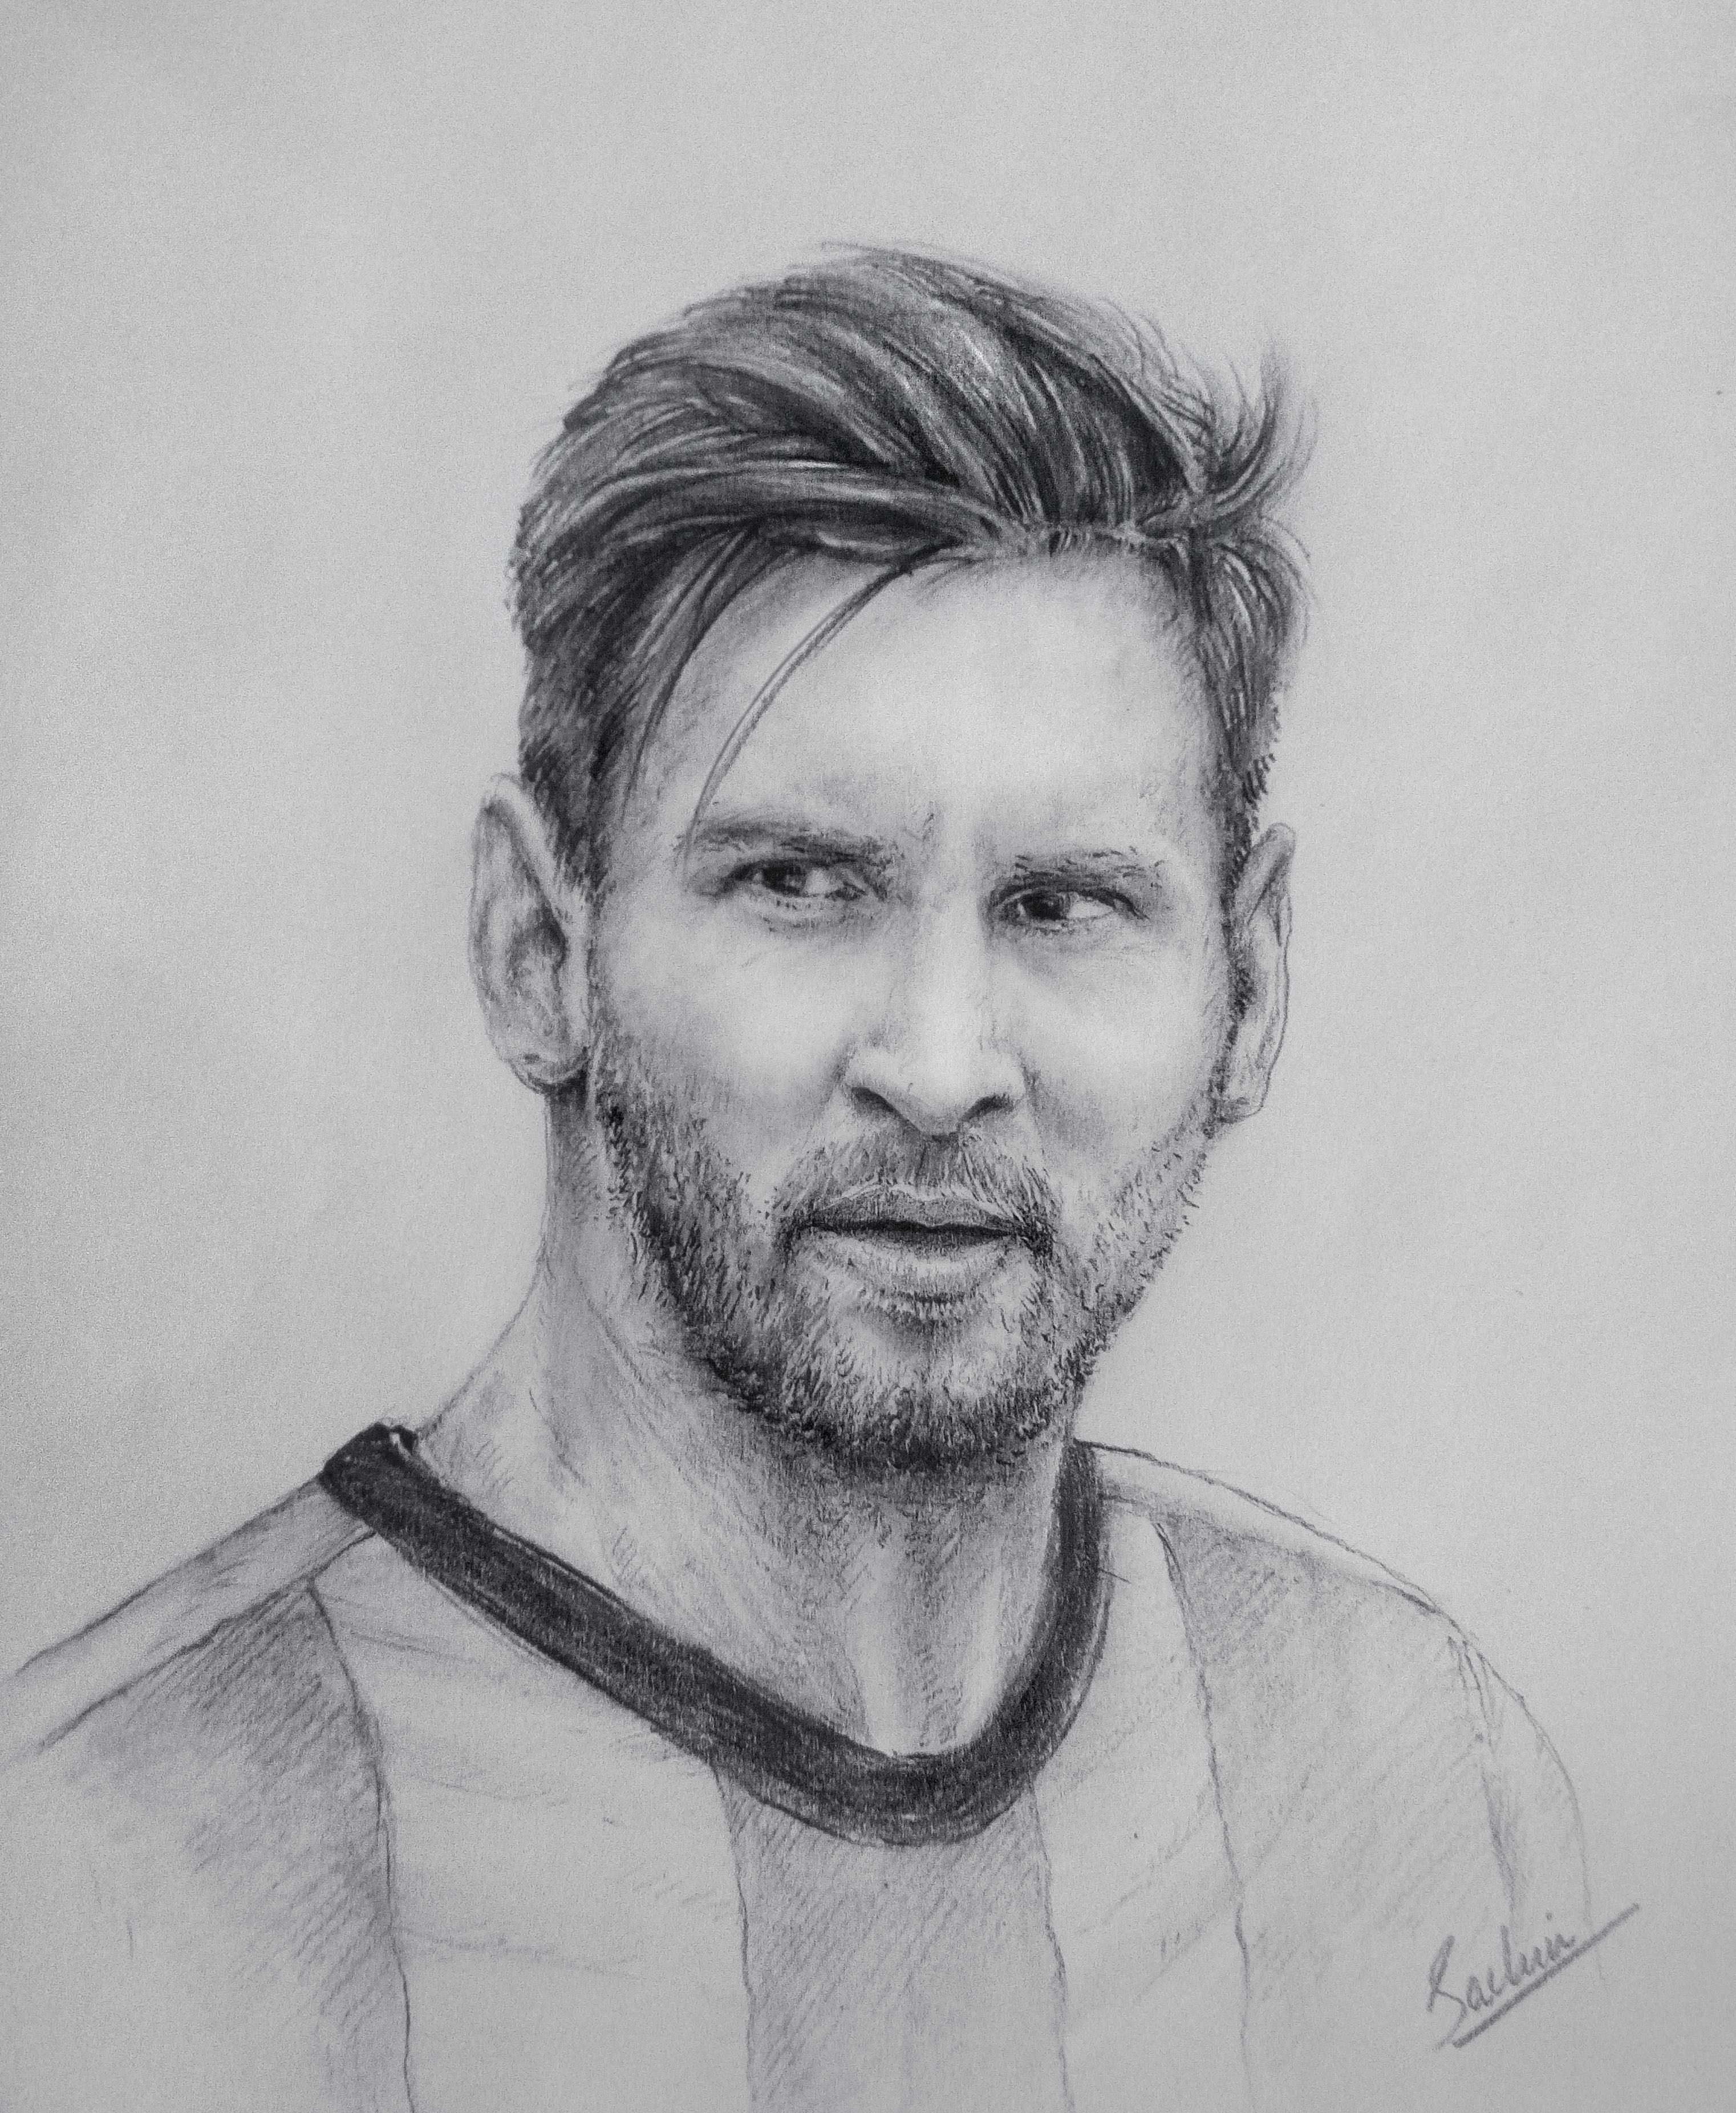 Lionel Messi Portrait Celebrity Drawings Pencil Drawings